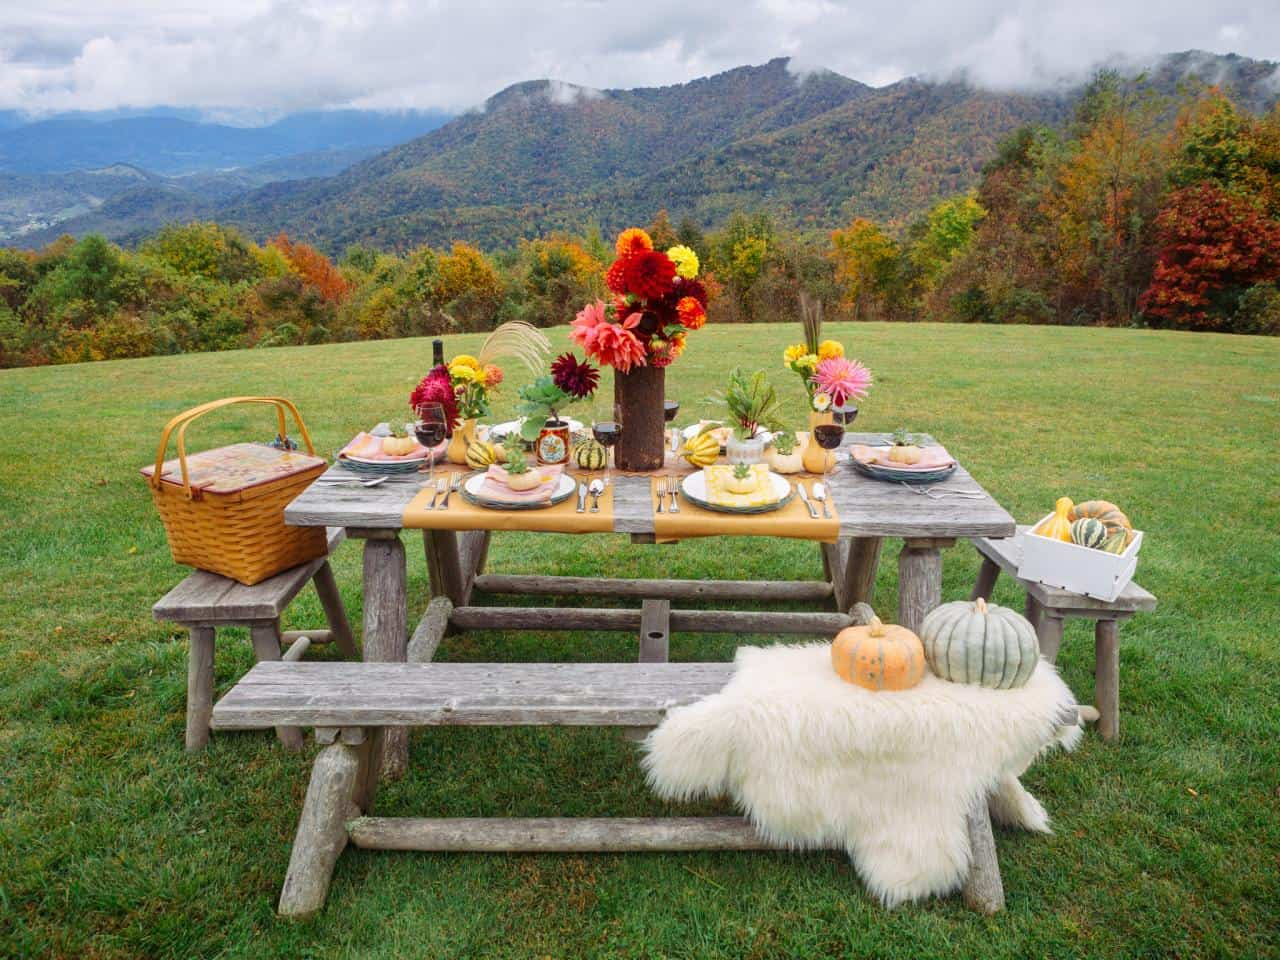 Taking your fall decor outdoors can be an excellent idea especially if you are planning a picnic